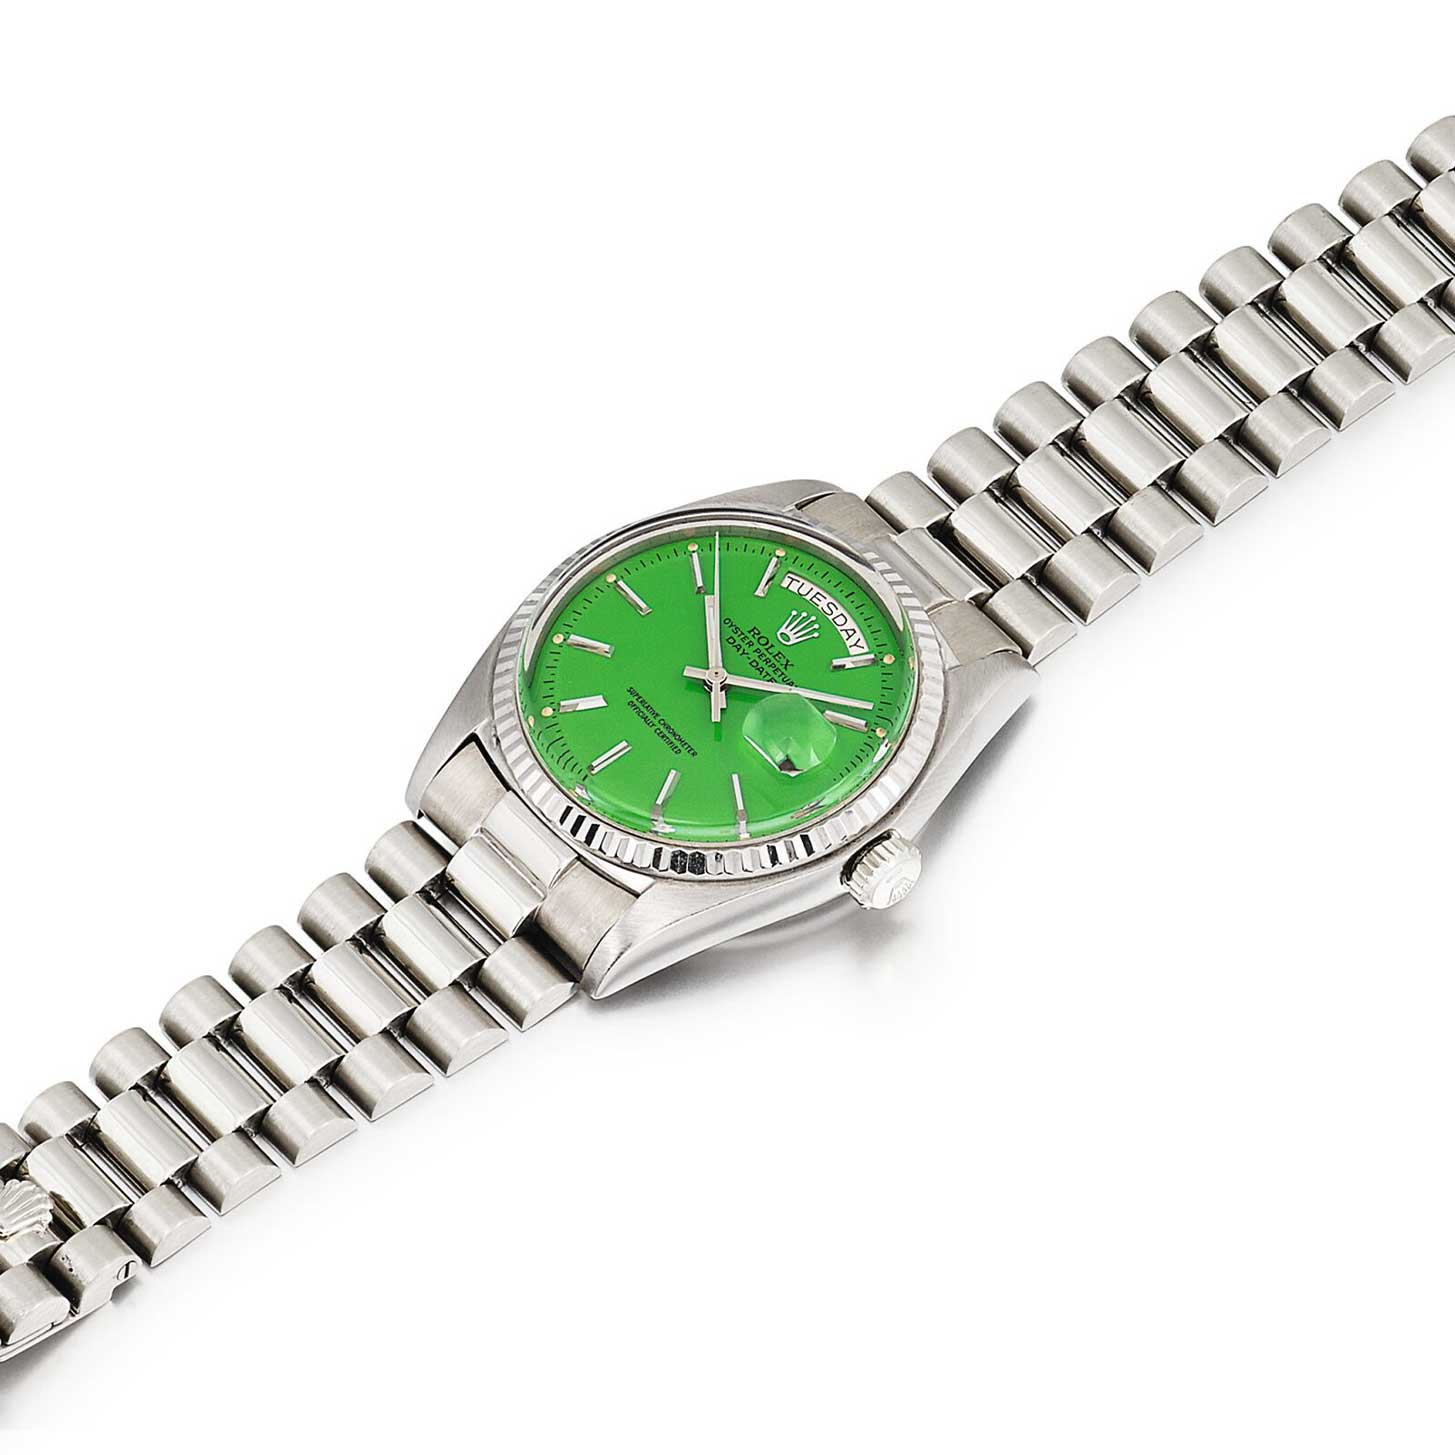 A green dial Stella Day-Date ref. 1803 (Image: sothebys.com)